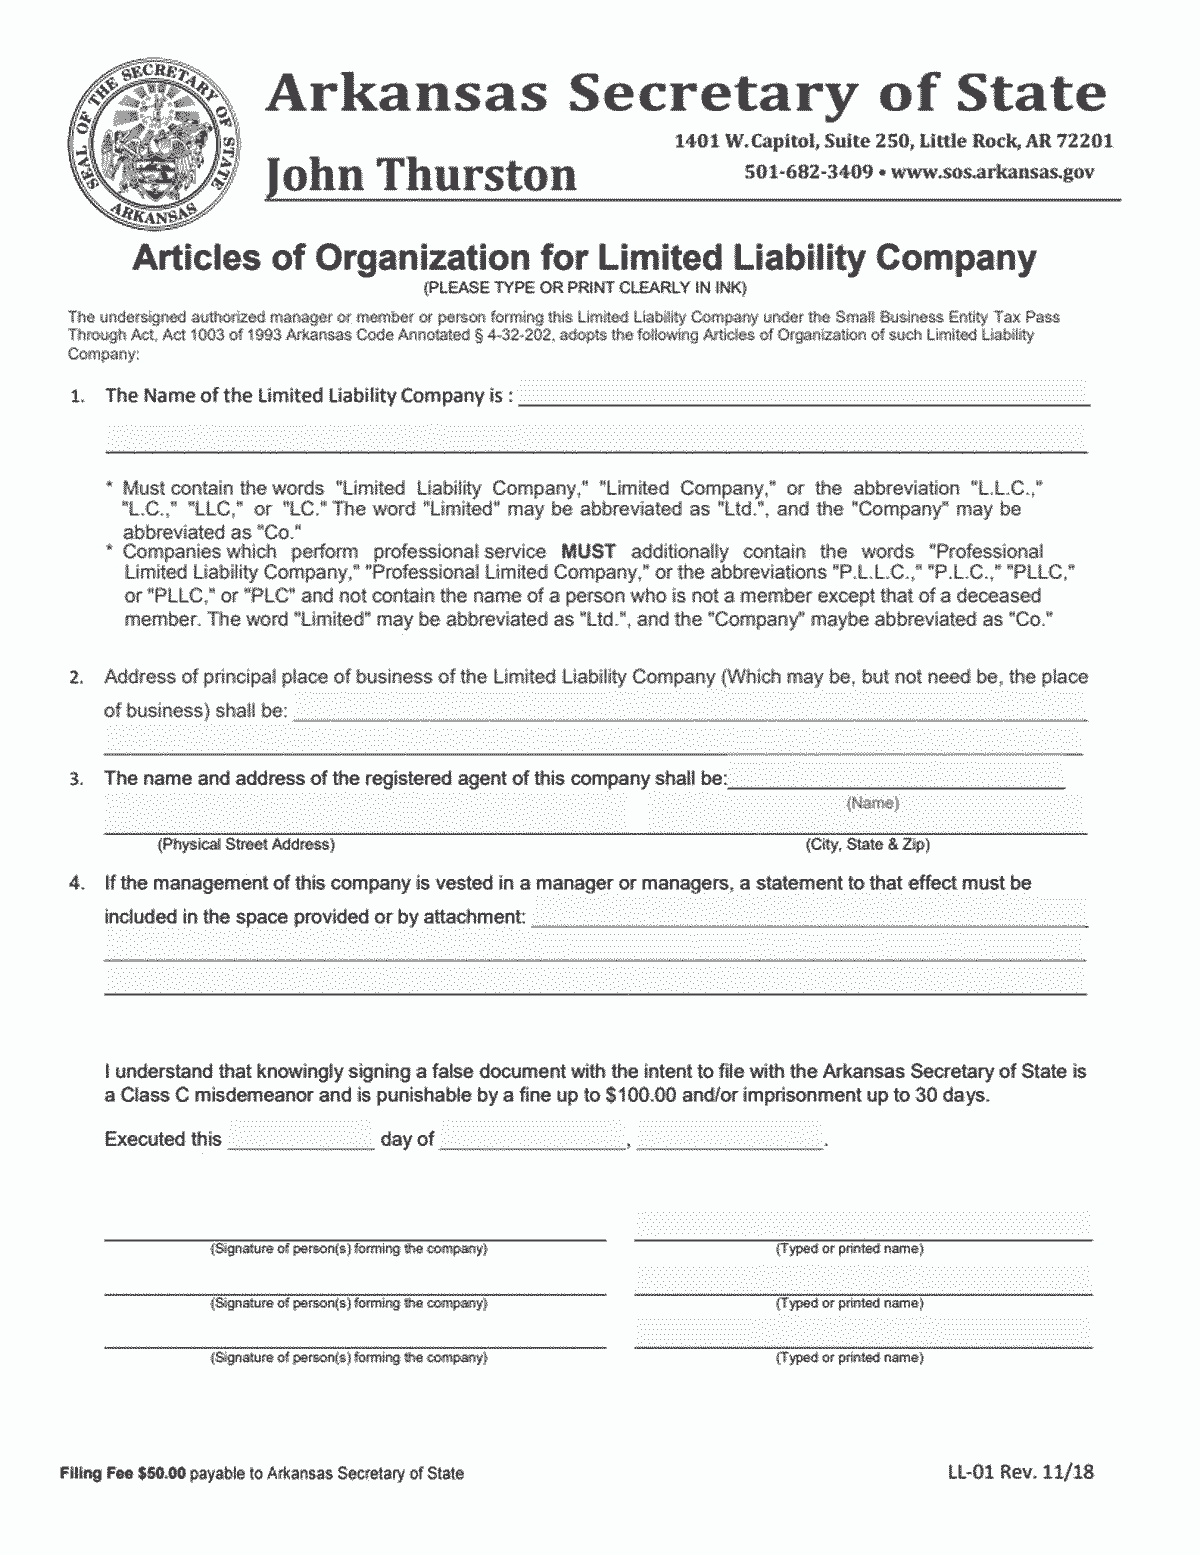 Arkansas LLC Formation Document